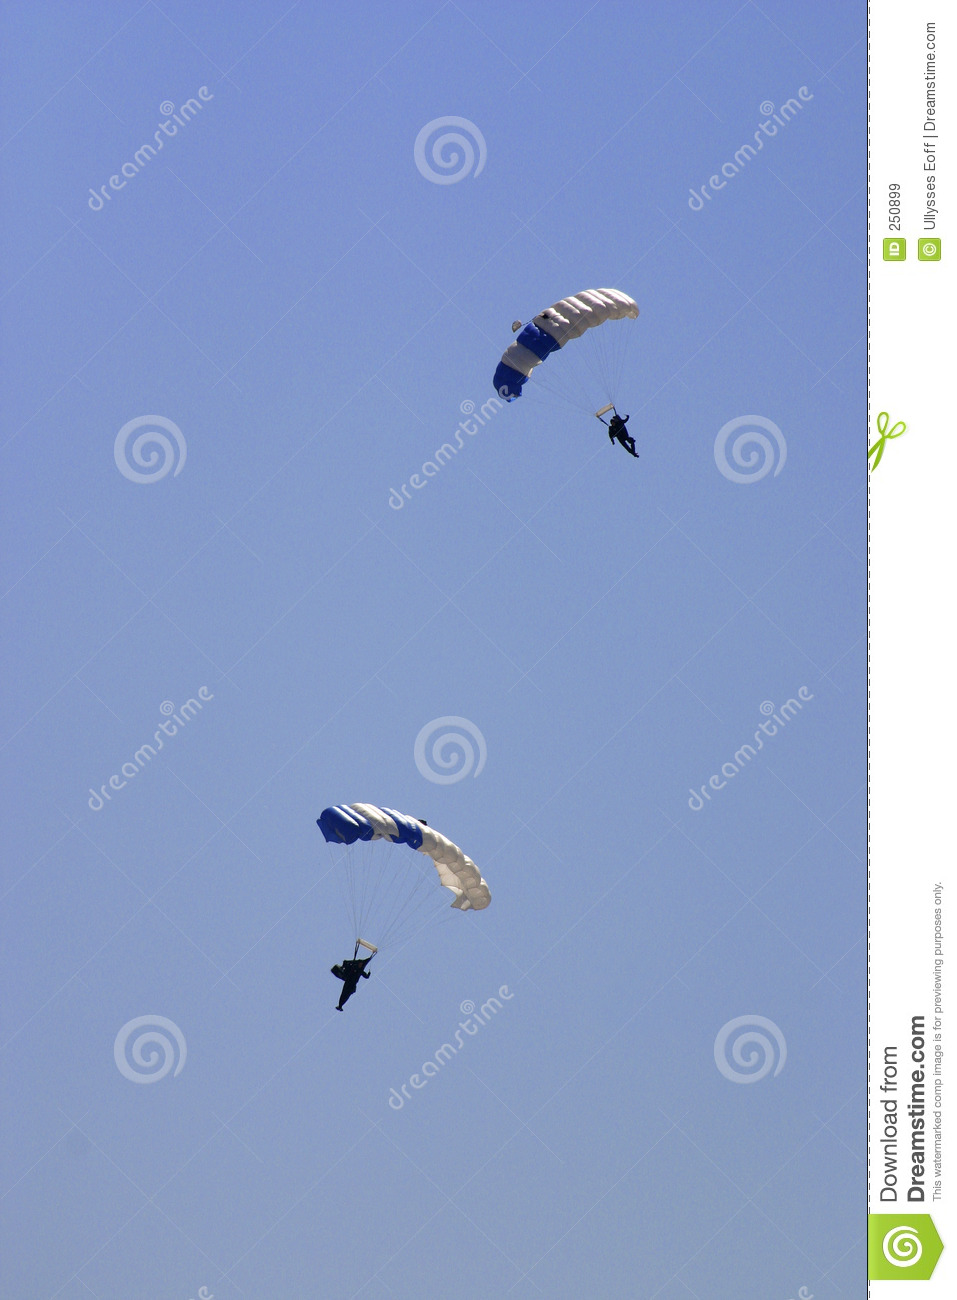 Royalty Free Stock Images  United States Air Force Paratroopers